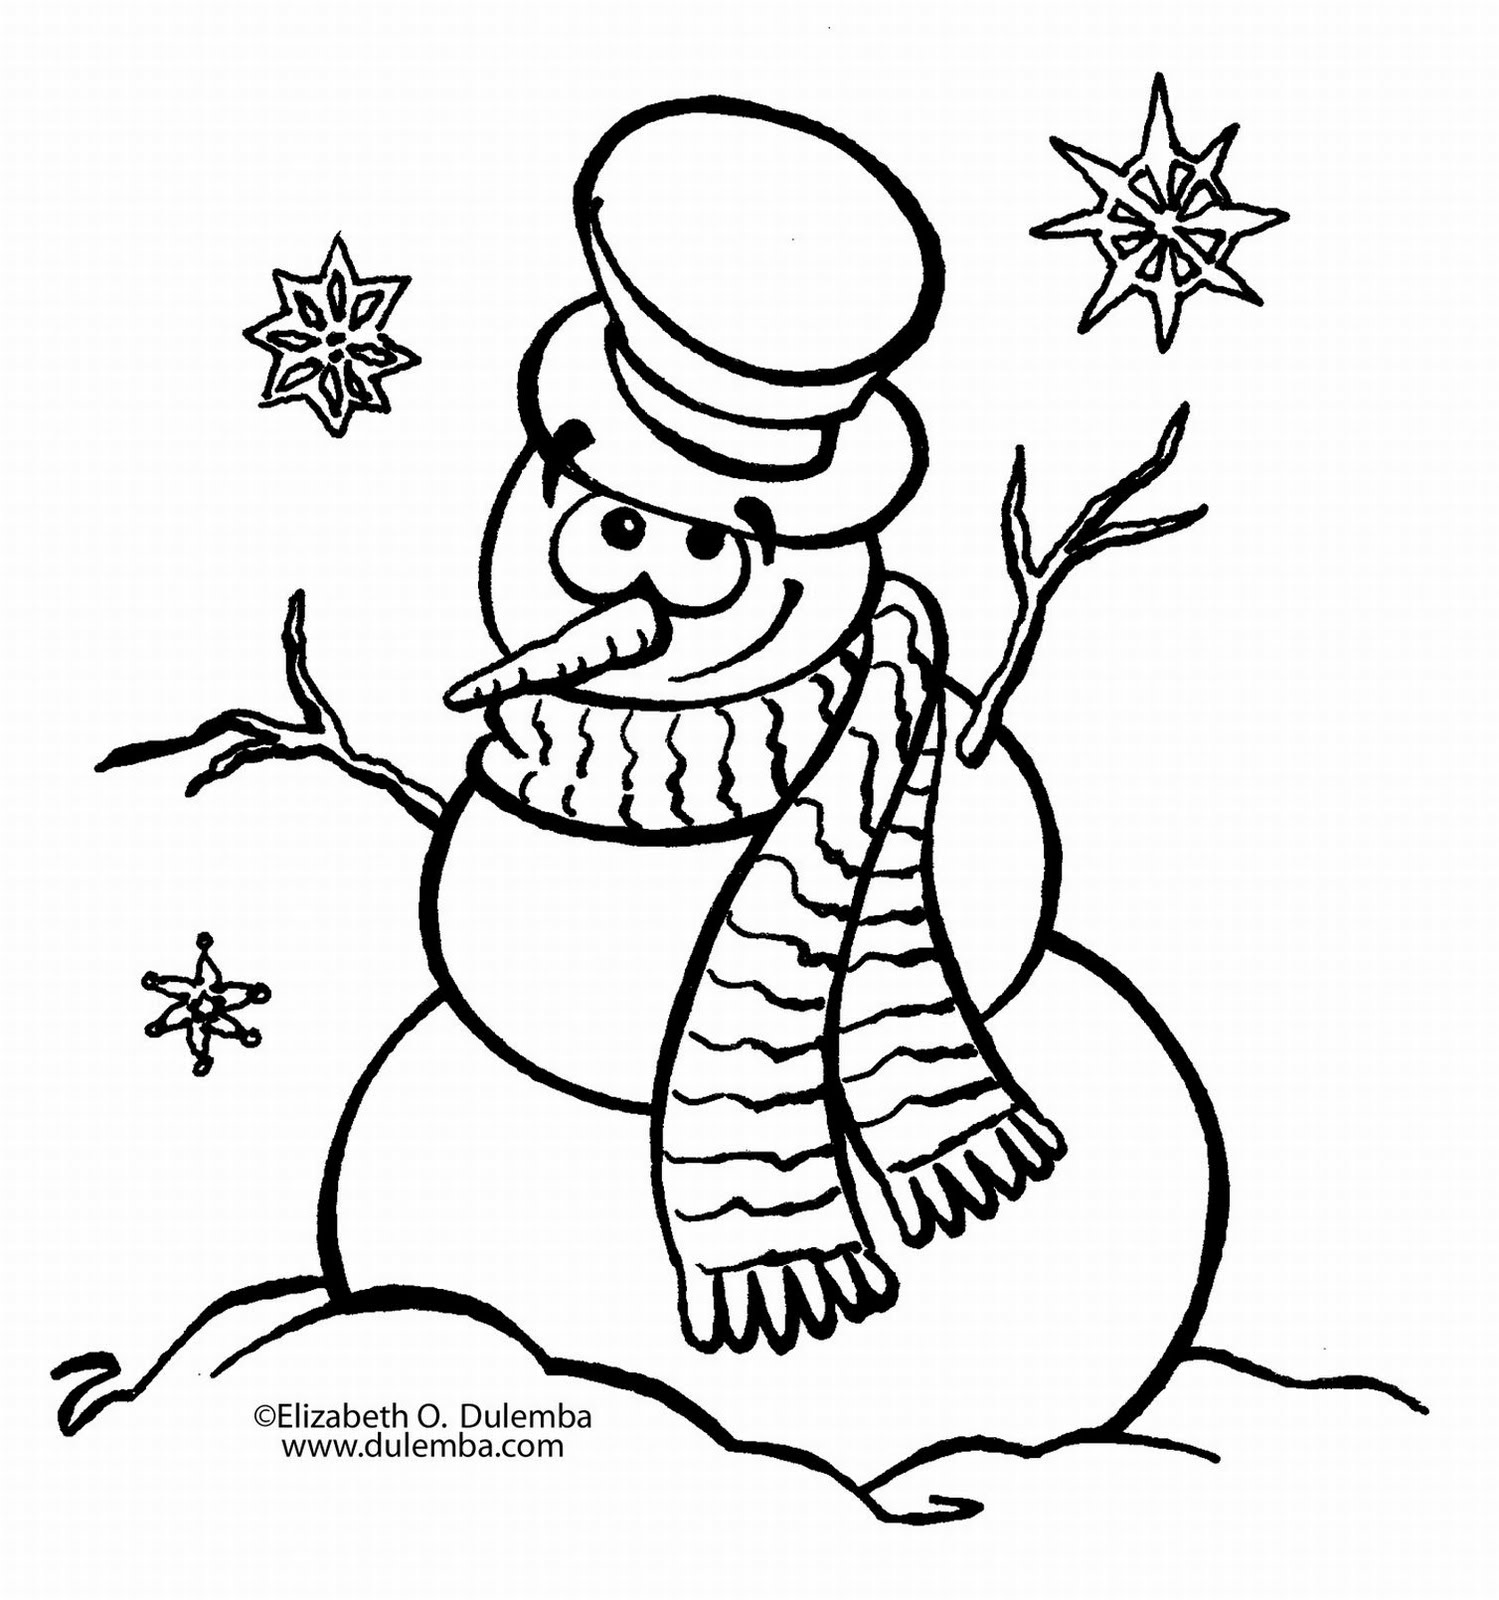 free printable snowman coloring pages snowman coloring pages to download and print for free free pages snowman printable coloring